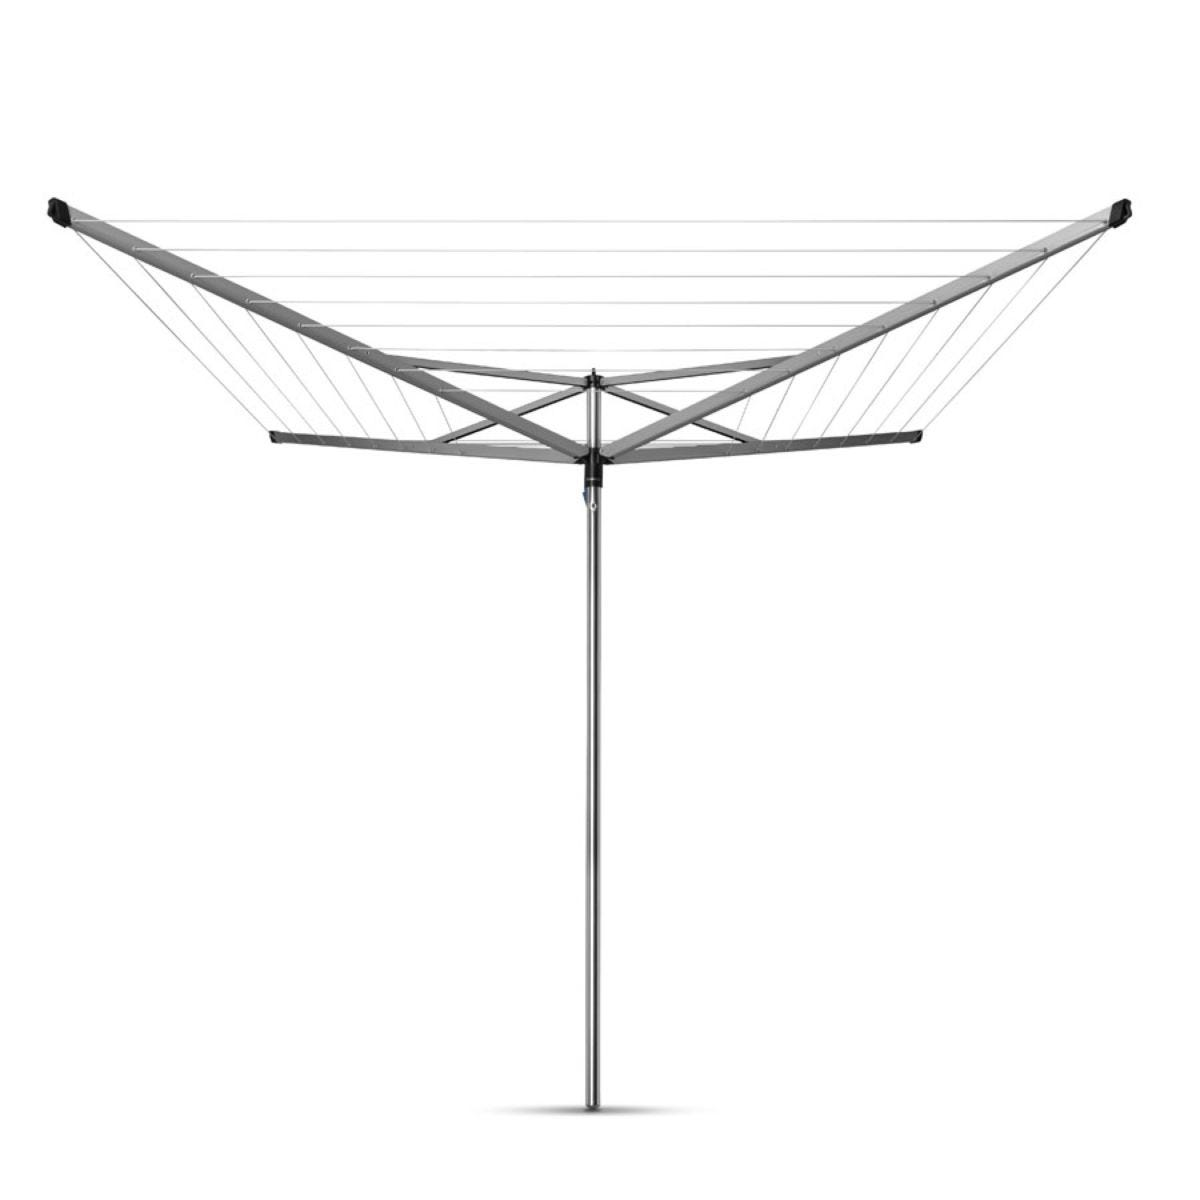 Brabantia 50m 4-Arm Rotary Airer